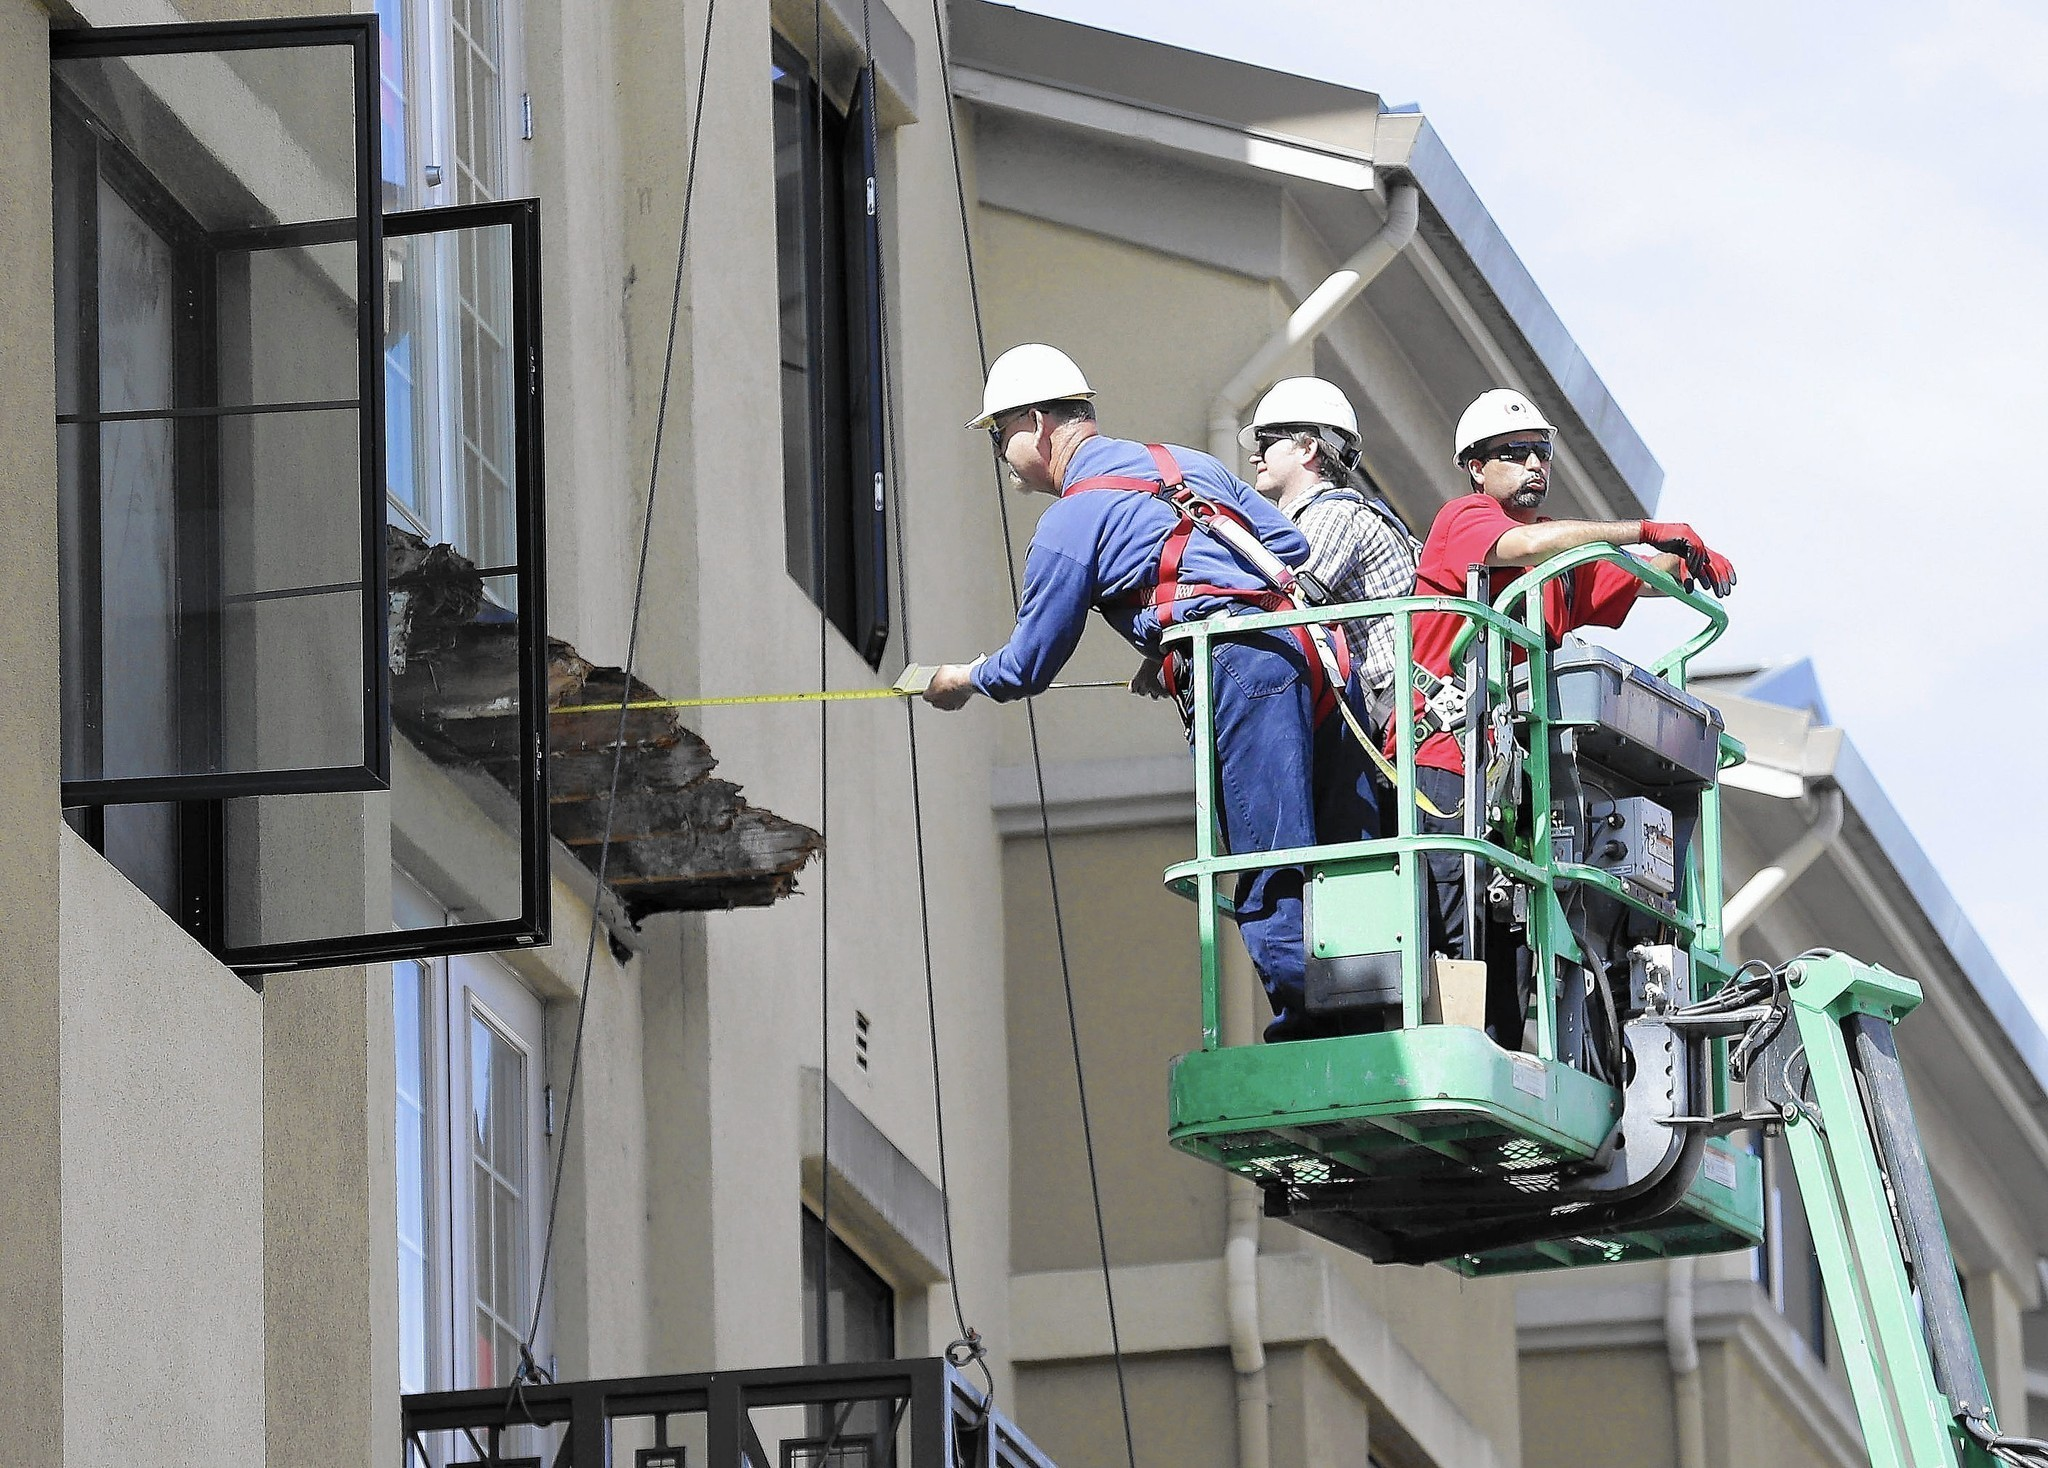 Berkeley Balcony Collapse Other Cases Spotlight Gap In Building